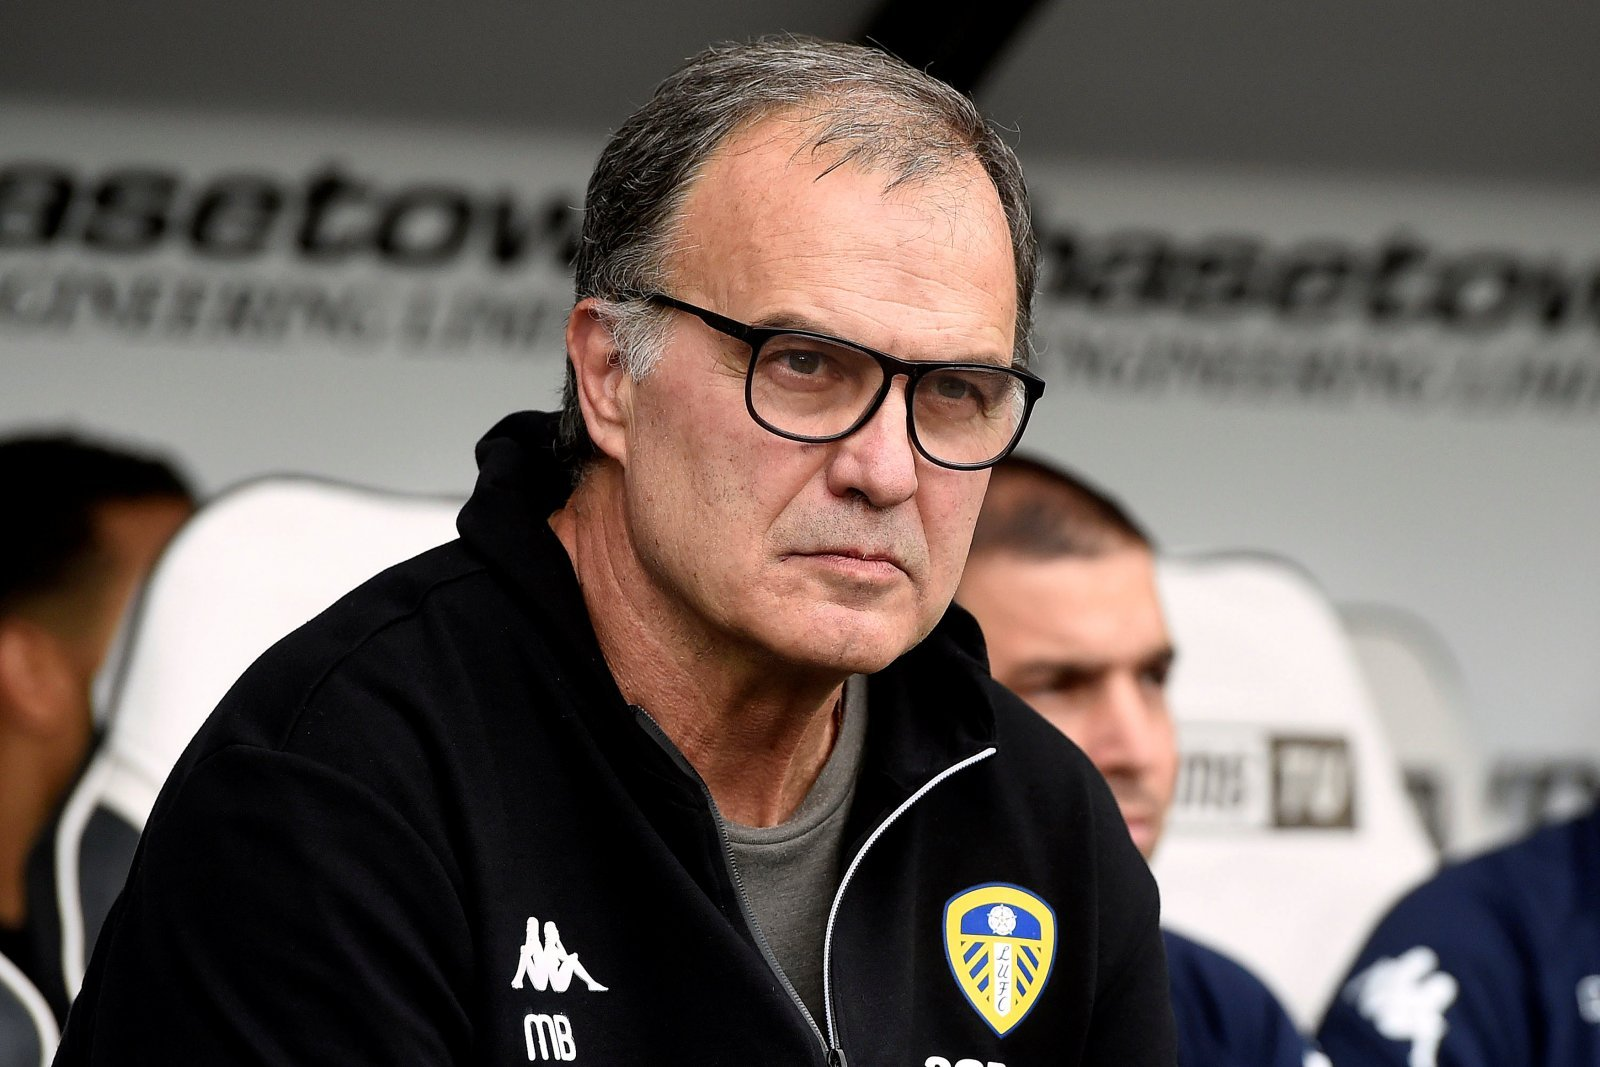 Marcelo Bielsa is committed to one philosophy and one philosophy only